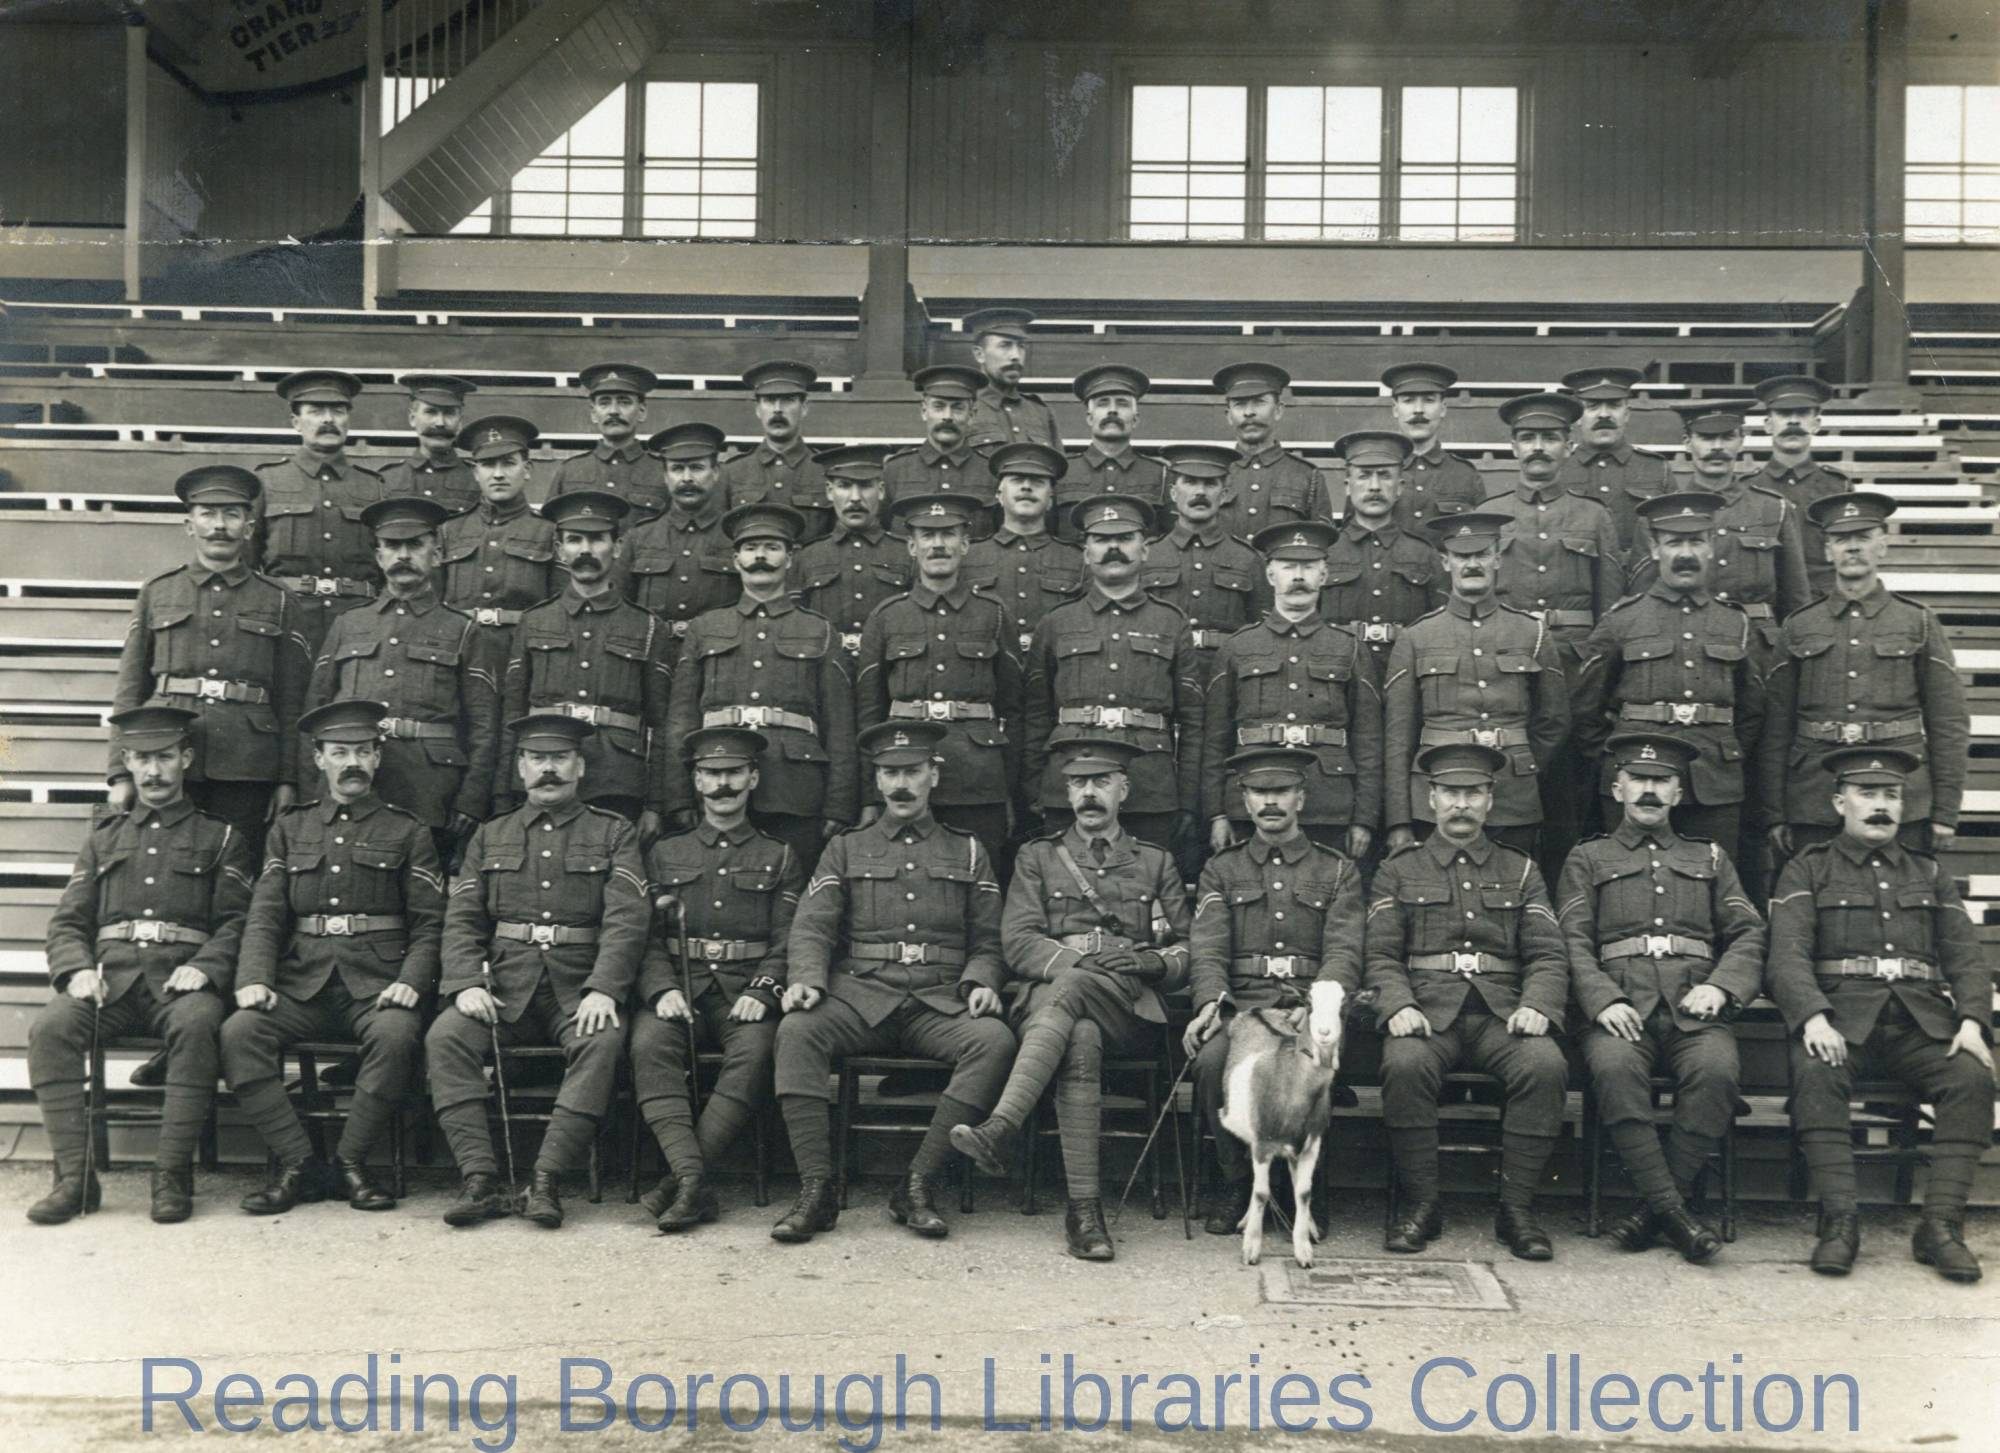 Corporals and Regimental Pet Goat, National Reserve Prison Guard, Prisoner-of-War- Camp, Newbury Racecourse, 1914.